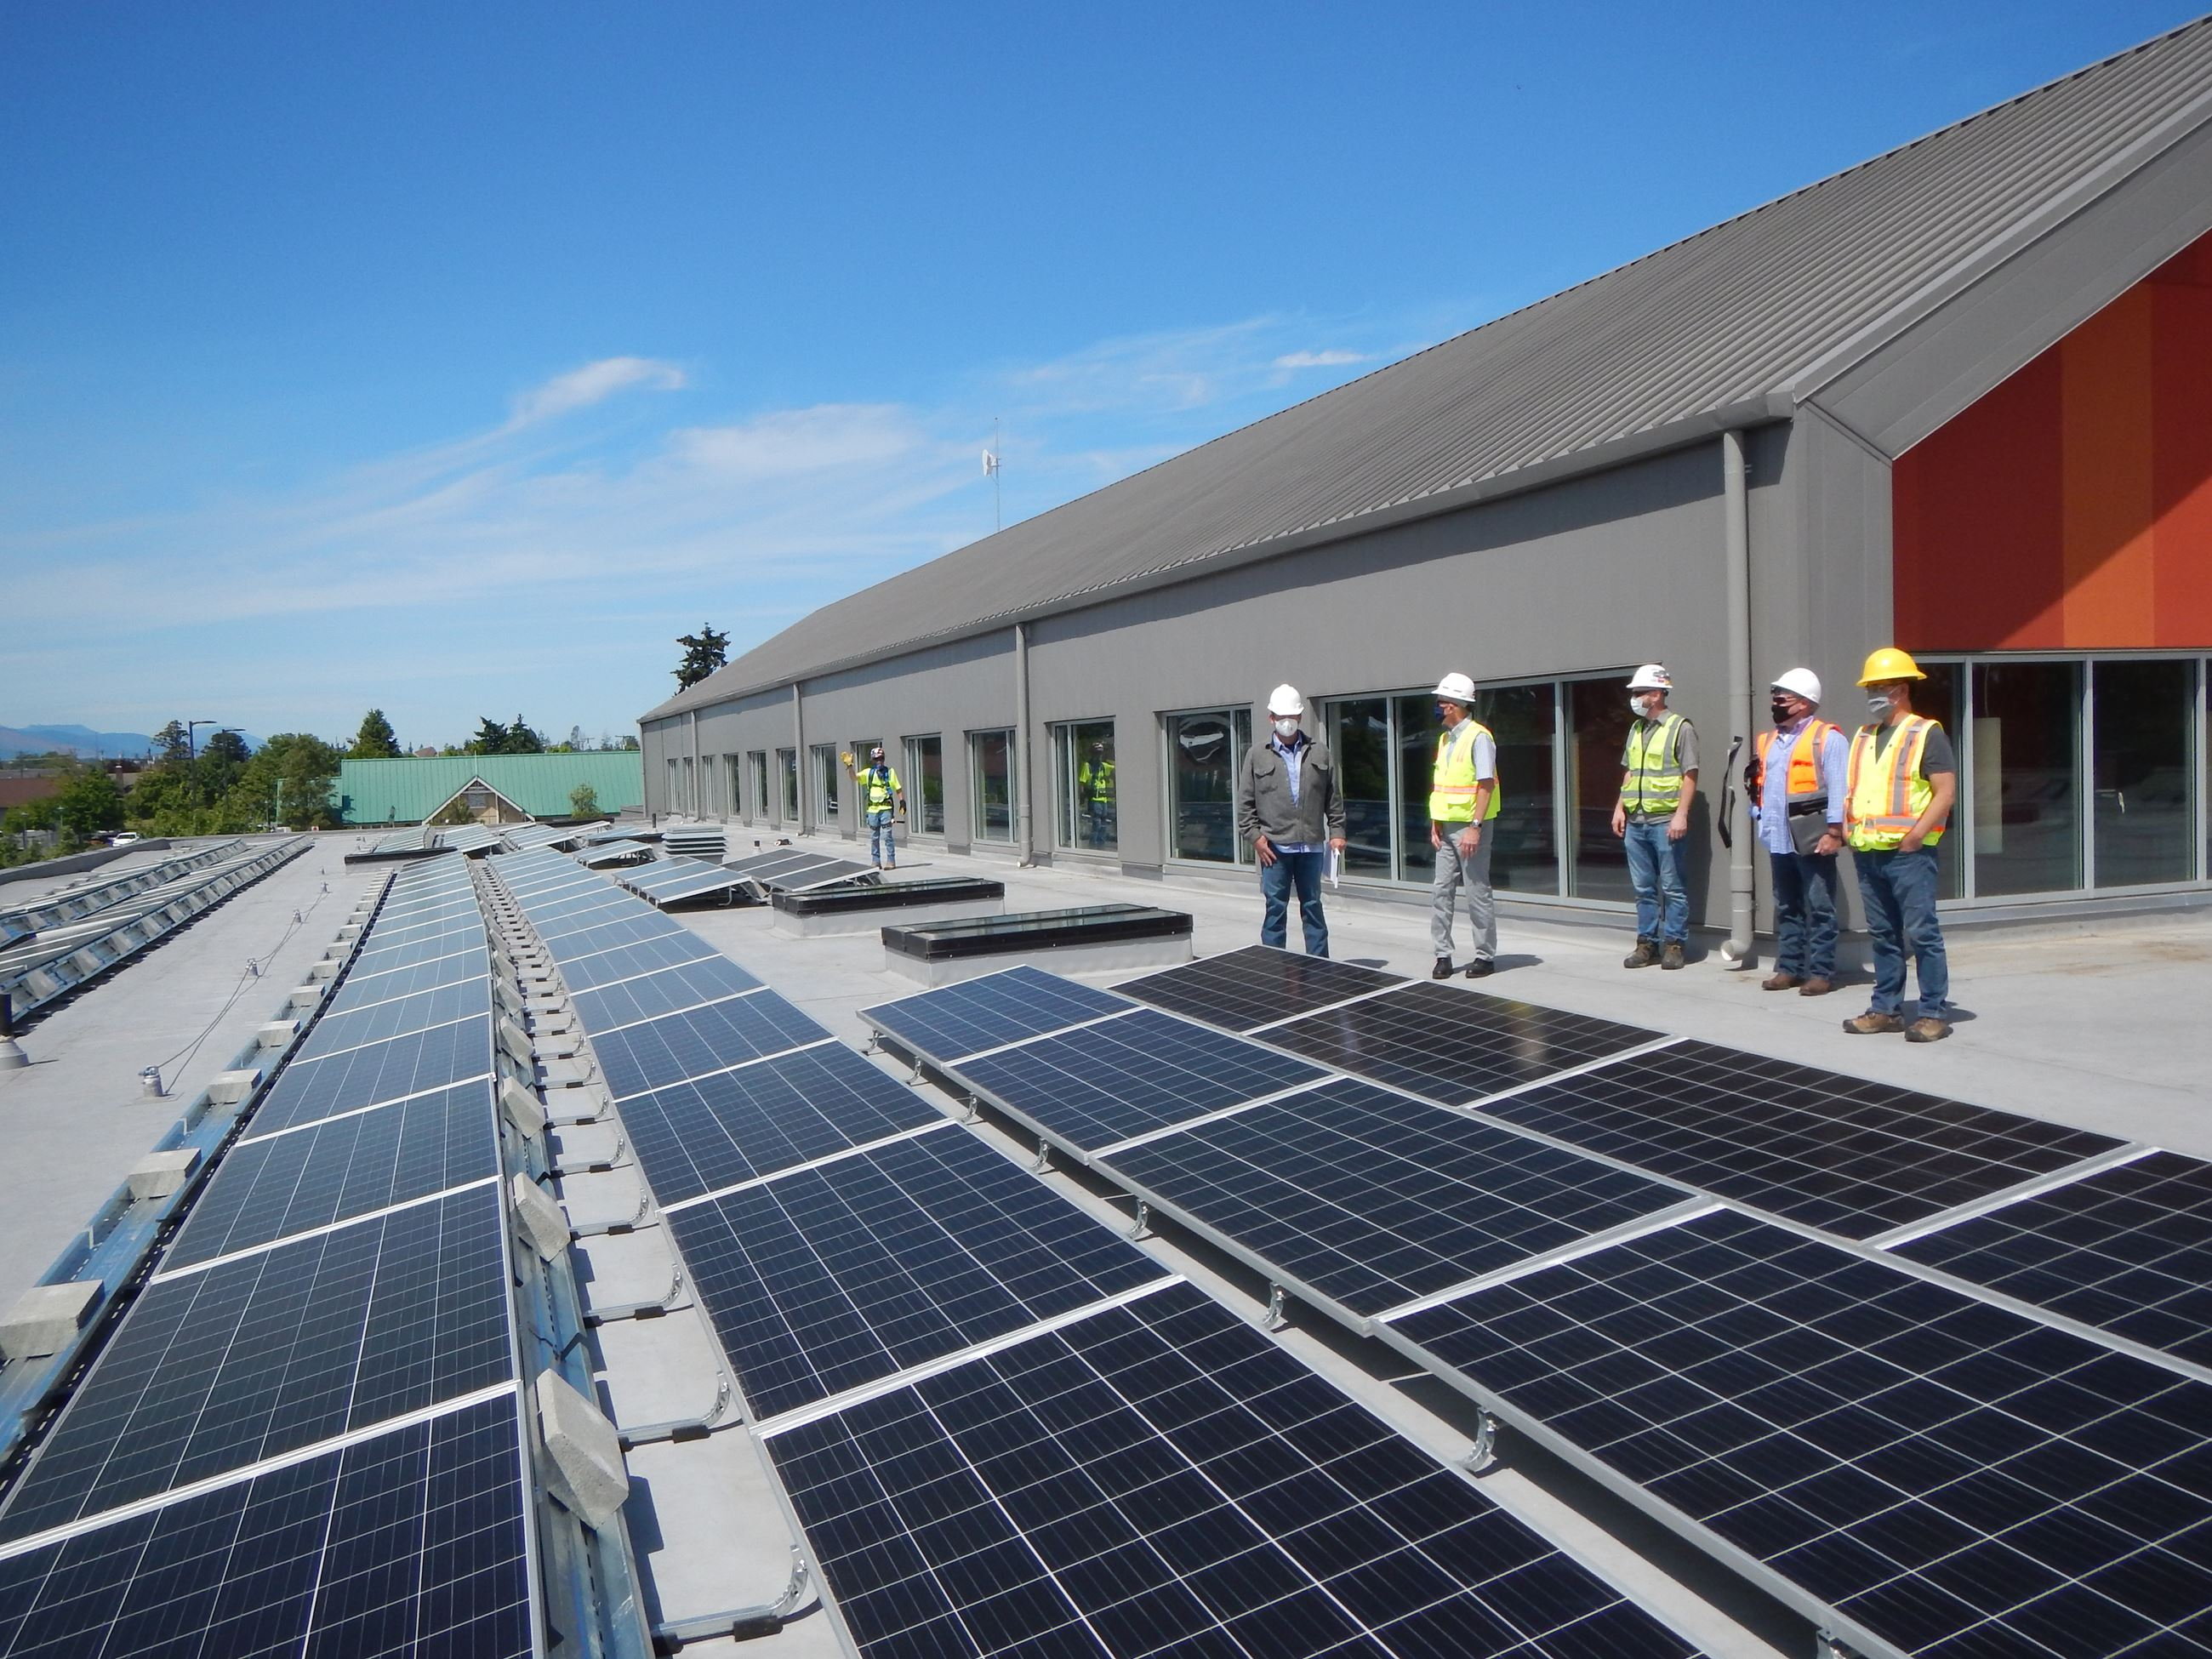 Roof view with panels and staff on commissioning tour, May 2020